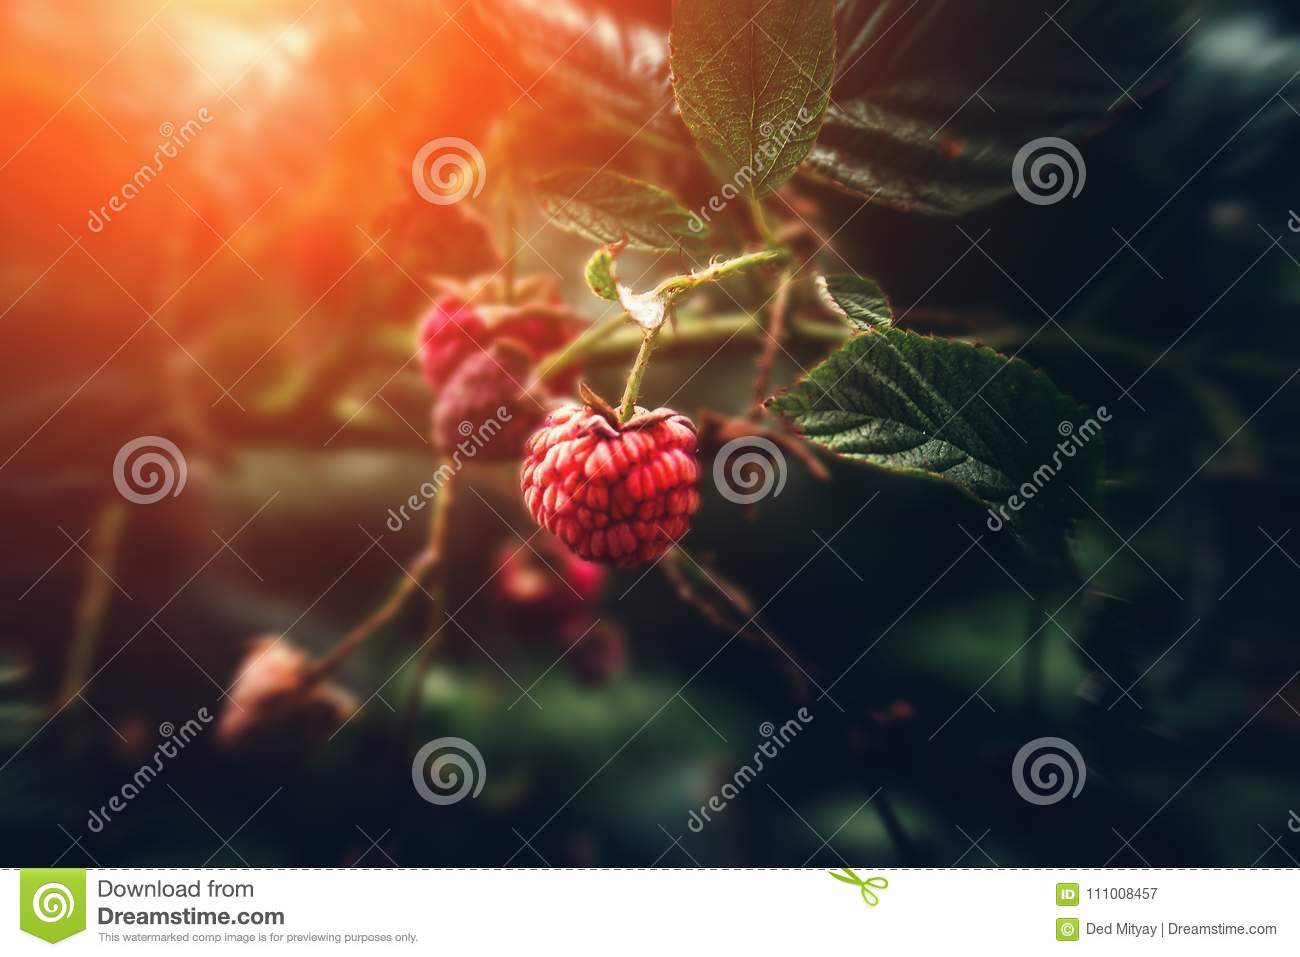 Wild raspberry on branch in nature forest, macro shot with selective focus, sunlight and toned